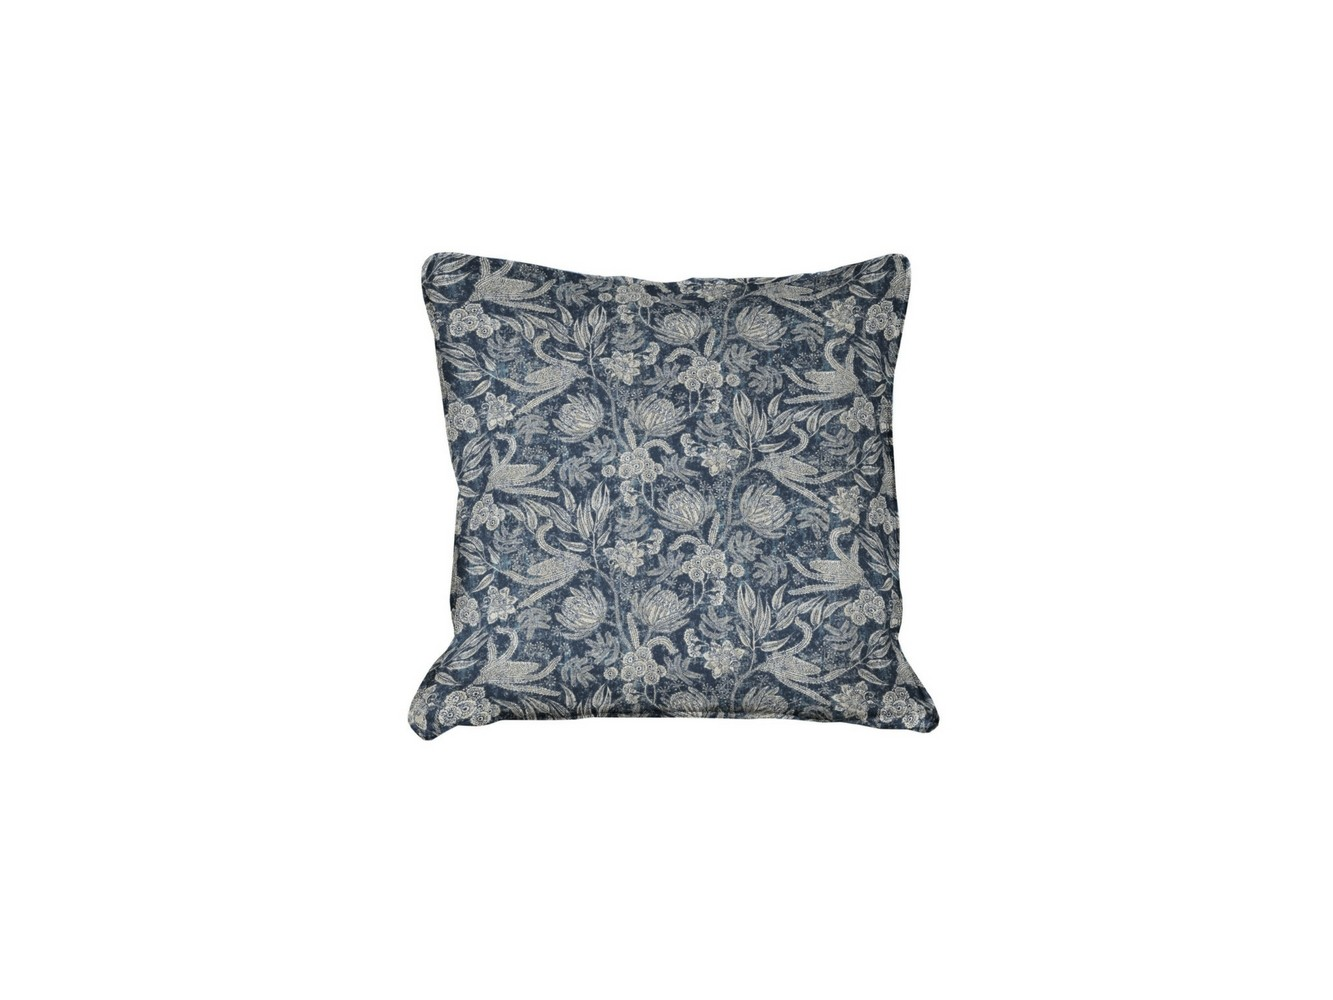 Extra Scatter Cushions - Fabric Floral Print